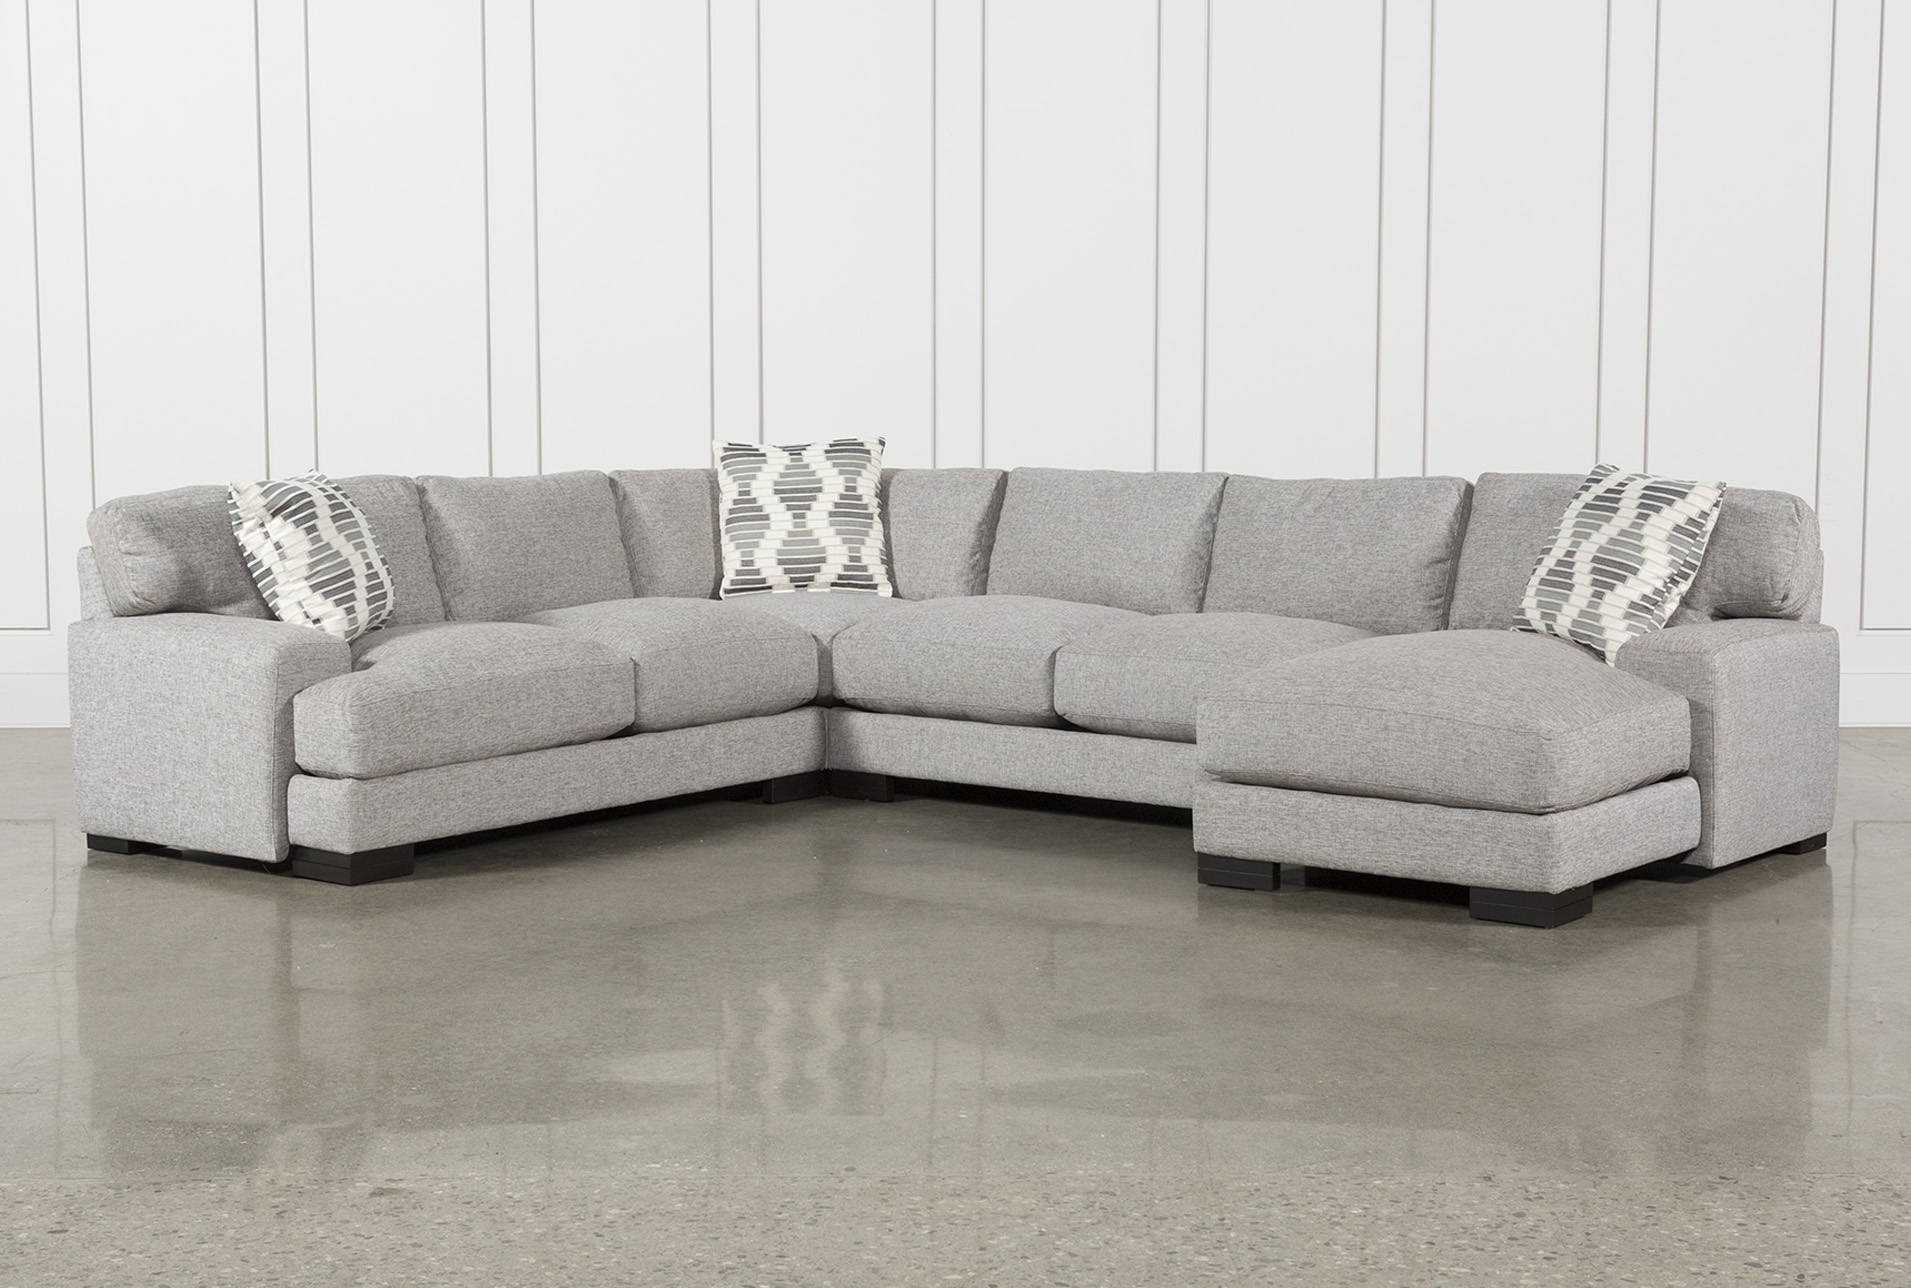 Harper Foam 3 Piece Sectional W/raf Chaise regarding Harper Foam 3 Piece Sectionals With Raf Chaise (Image 8 of 30)